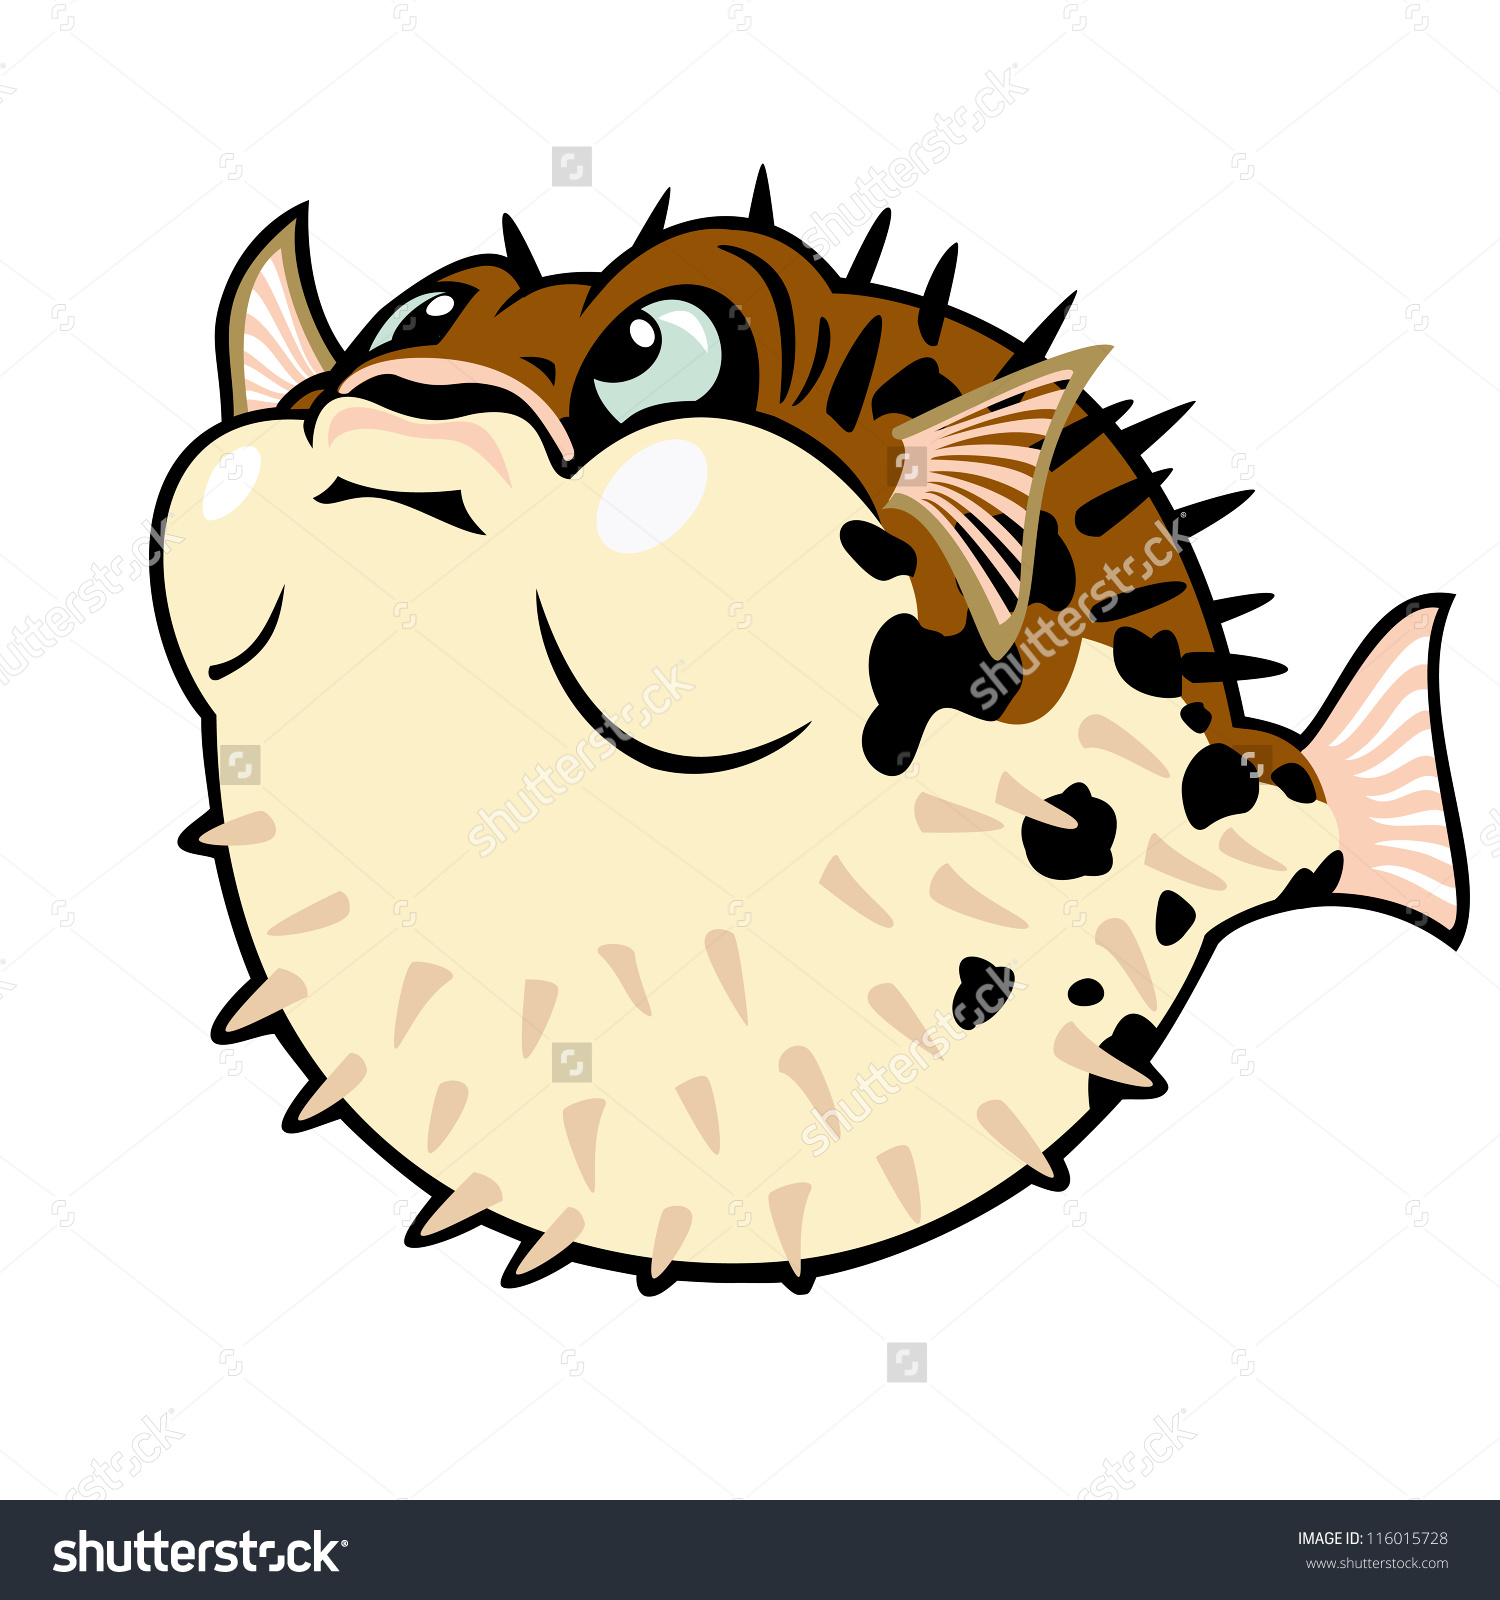 Puffer Fishblow Fishcartoon Vector Image Isolated Stock Vector.